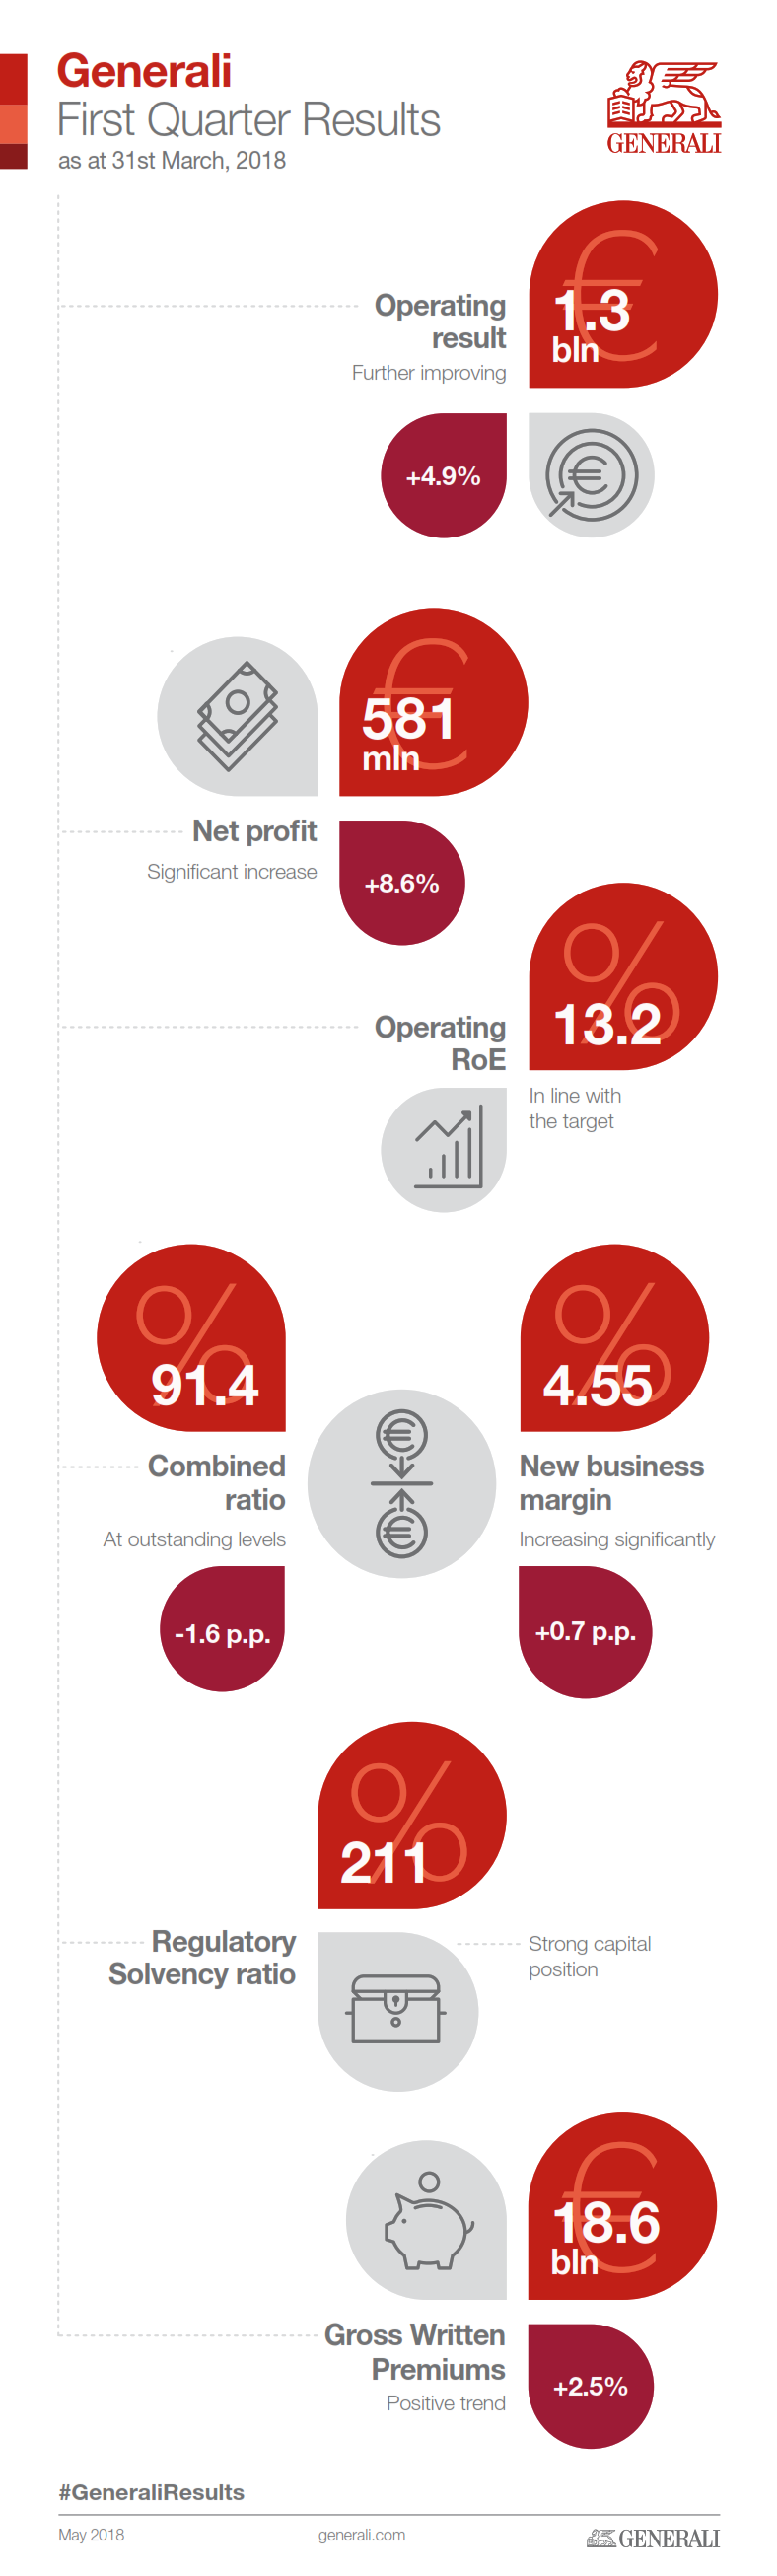 Generali Group 1Q 2018 results